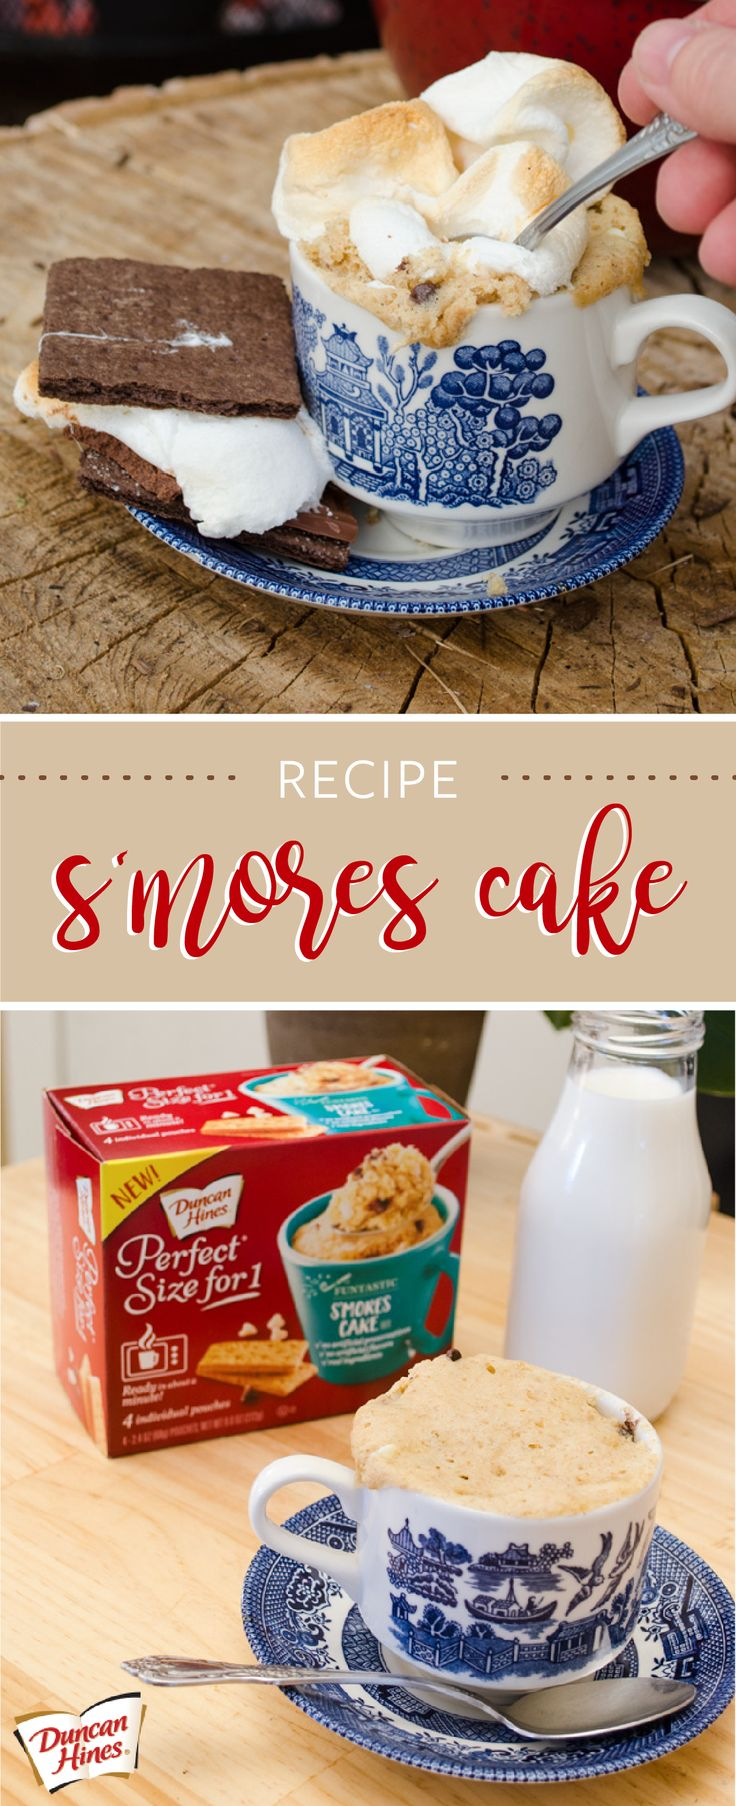 Enjoying the delicious combination of chocolate, marshmallows, and graham crackers has never been easier thanks to this Duncan Hines® Perfect Size for 1® S'mores Cake. Found at Kroger or your local Kroger banner, this simple and tasty dessert recipe is perfect for a late-night treat—especially since no baking is required!